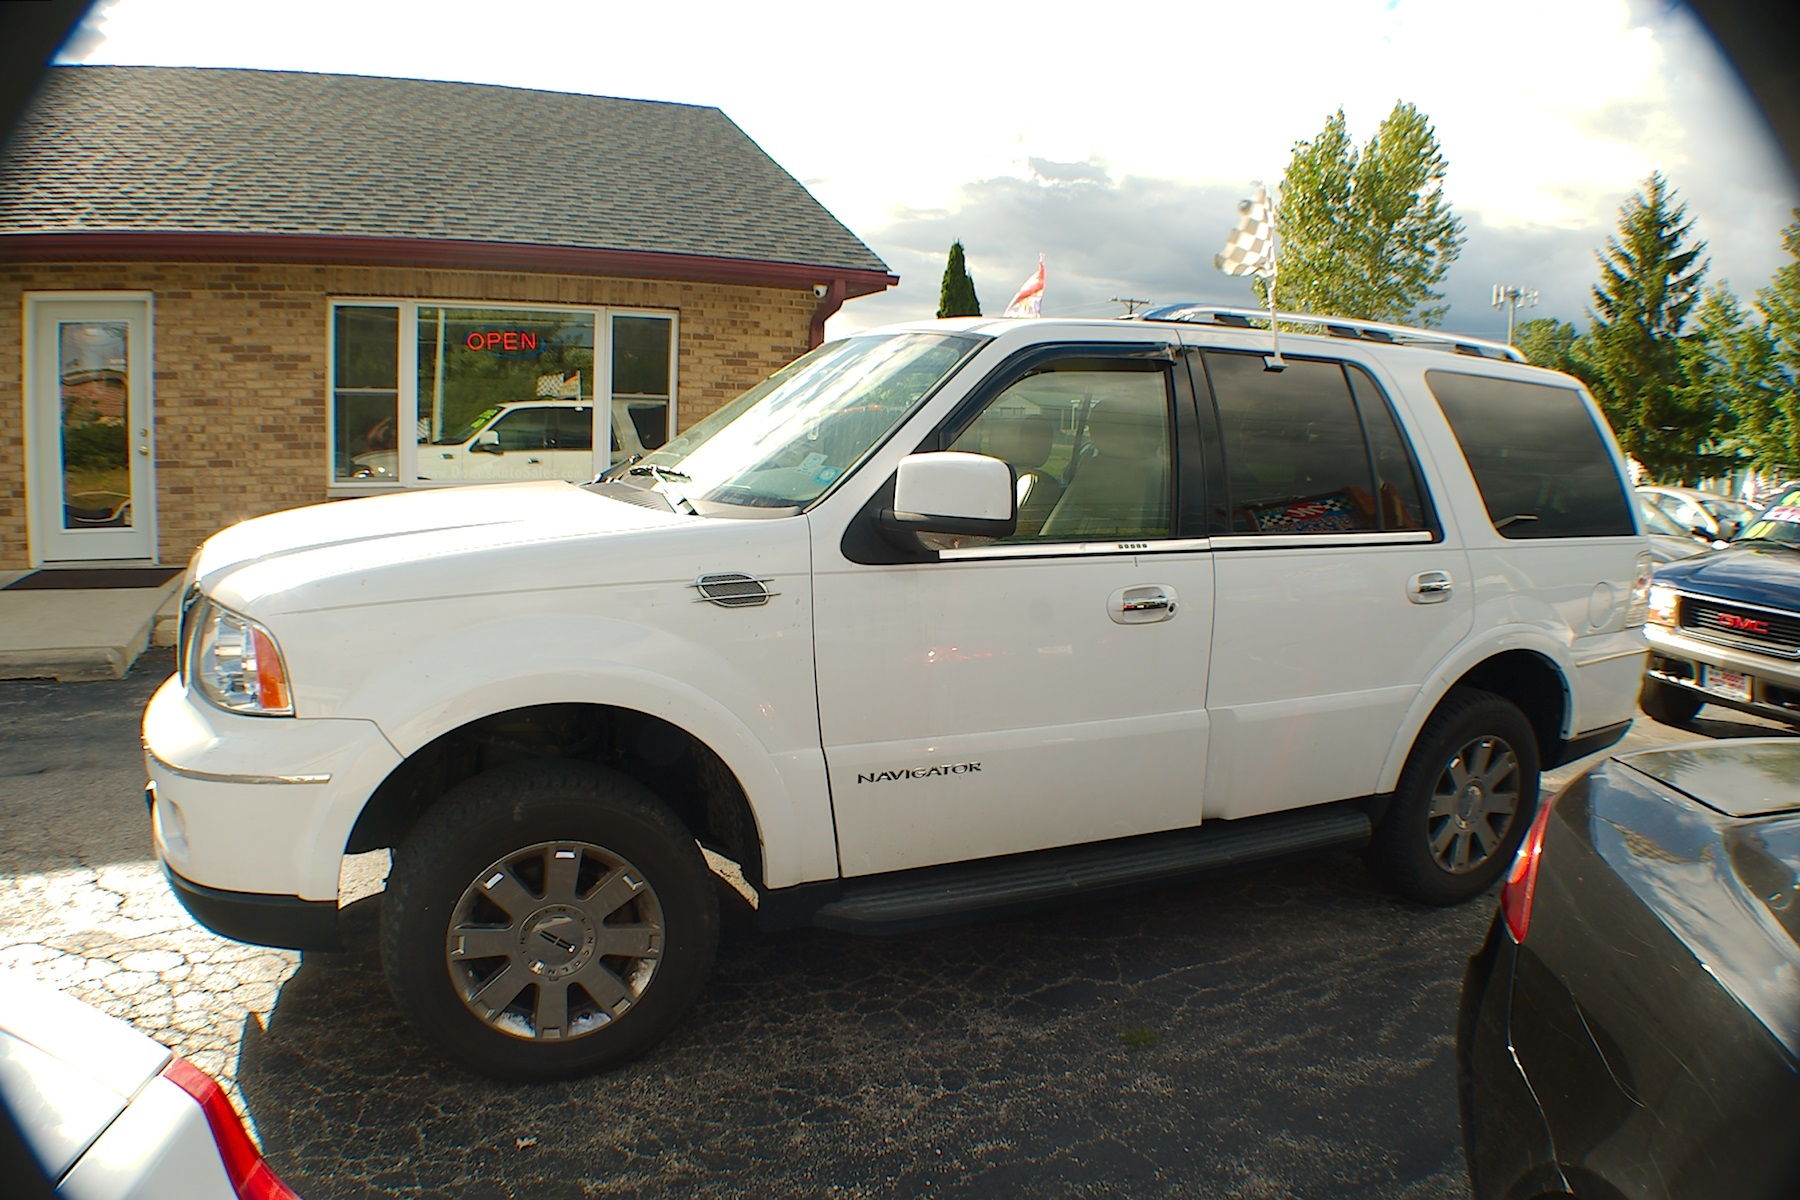 2006 Lincoln Navigator 4x4 White Used SUV Sale Antioch Zion Waukegan Lake County Illinois